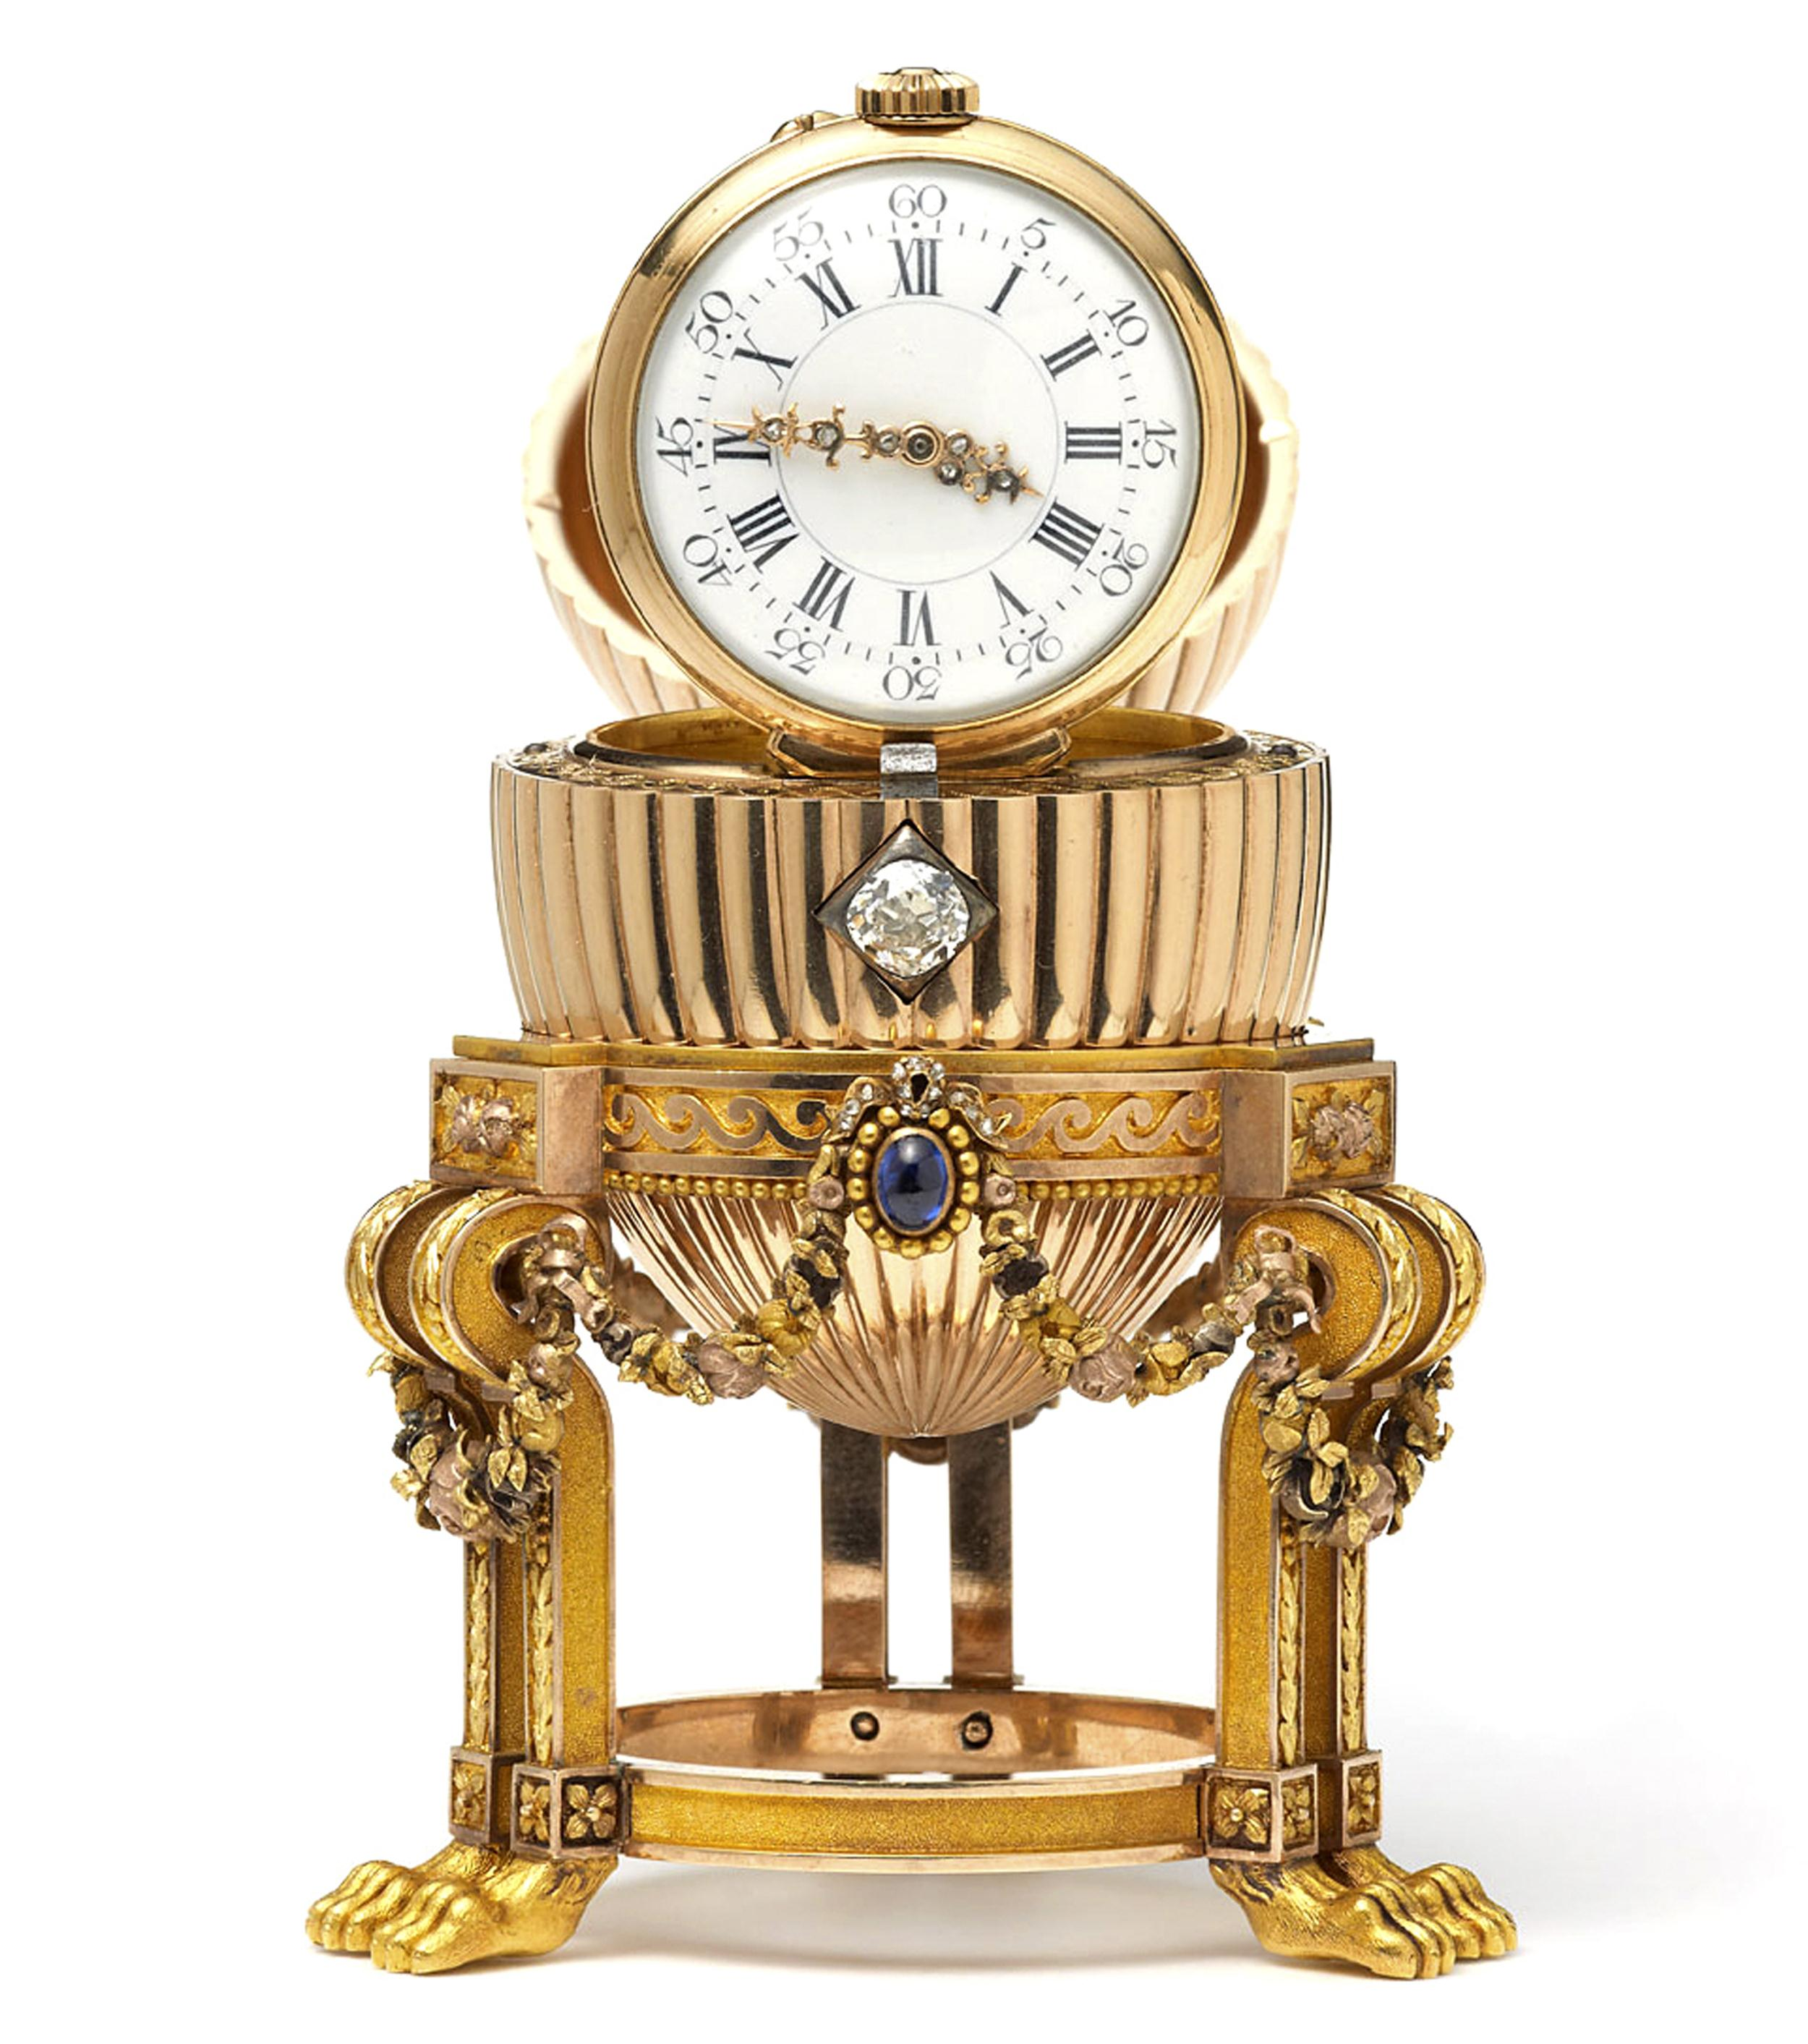 Image: A rare Imperial Faberge Egg with the top open to reveal a clock